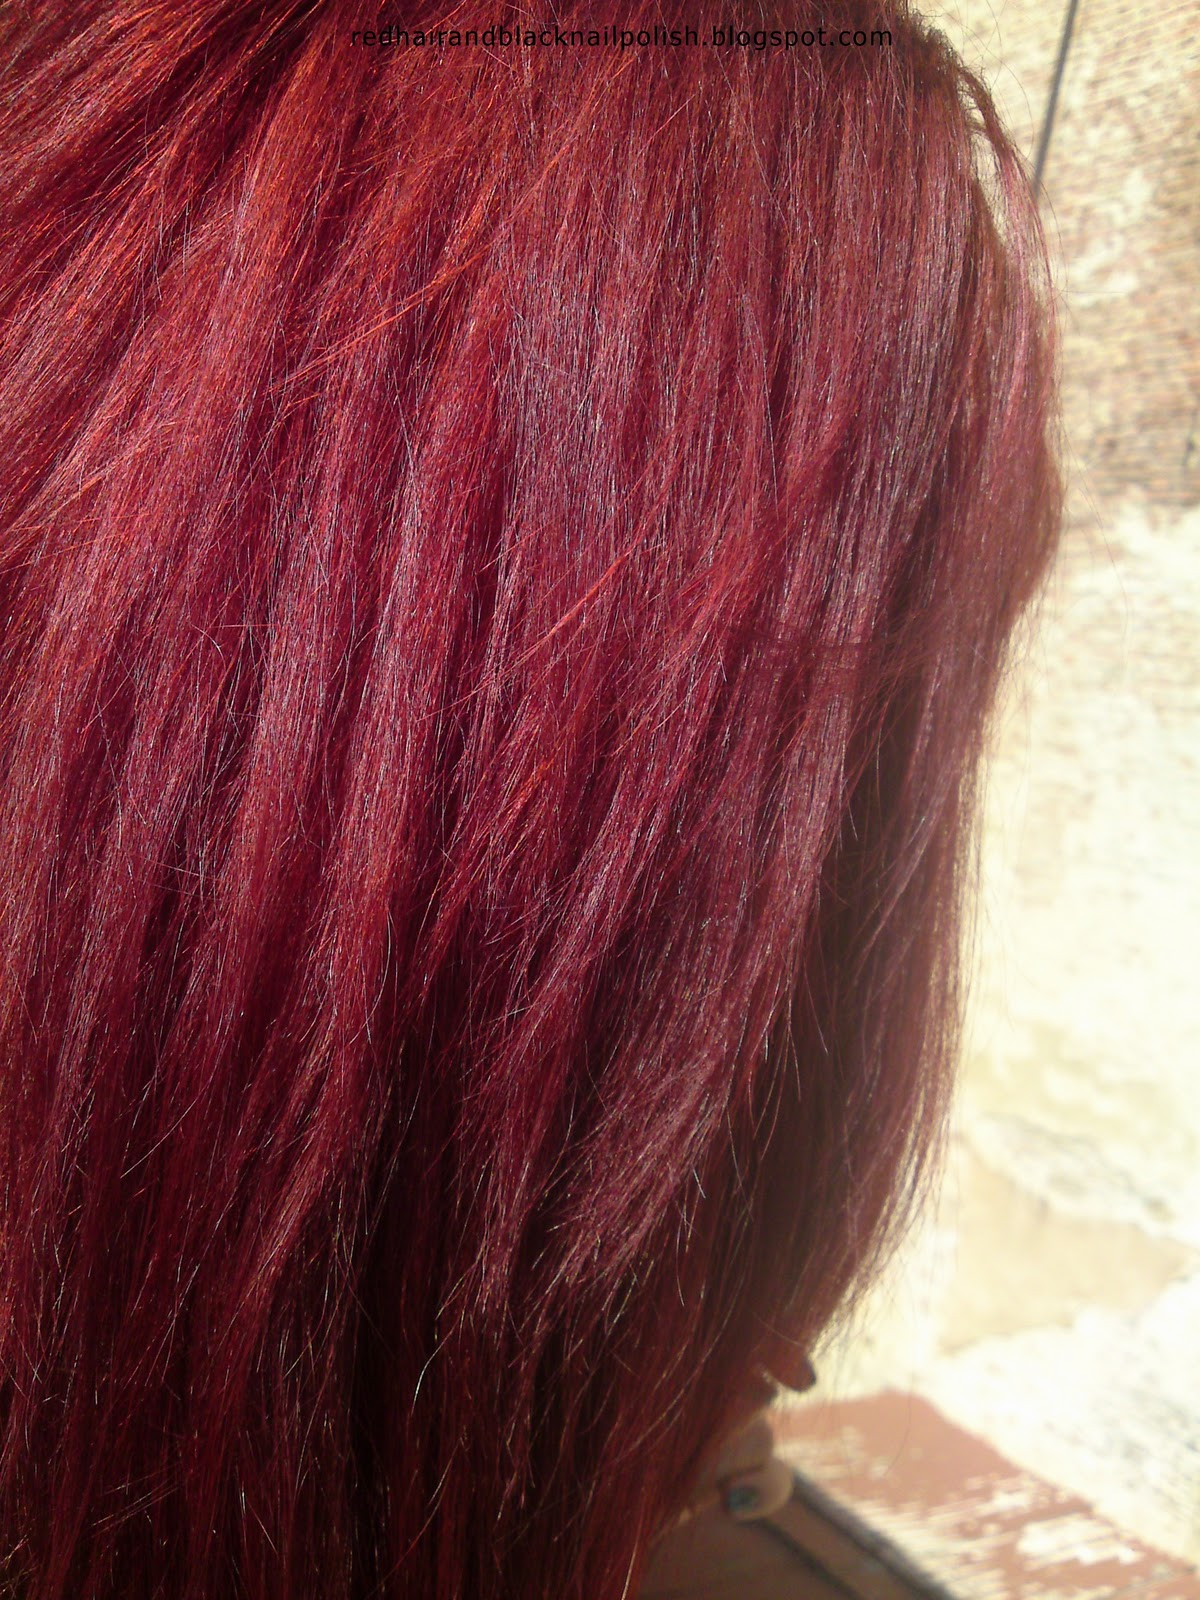 Red Hair Color Swatches Red hair and black nail